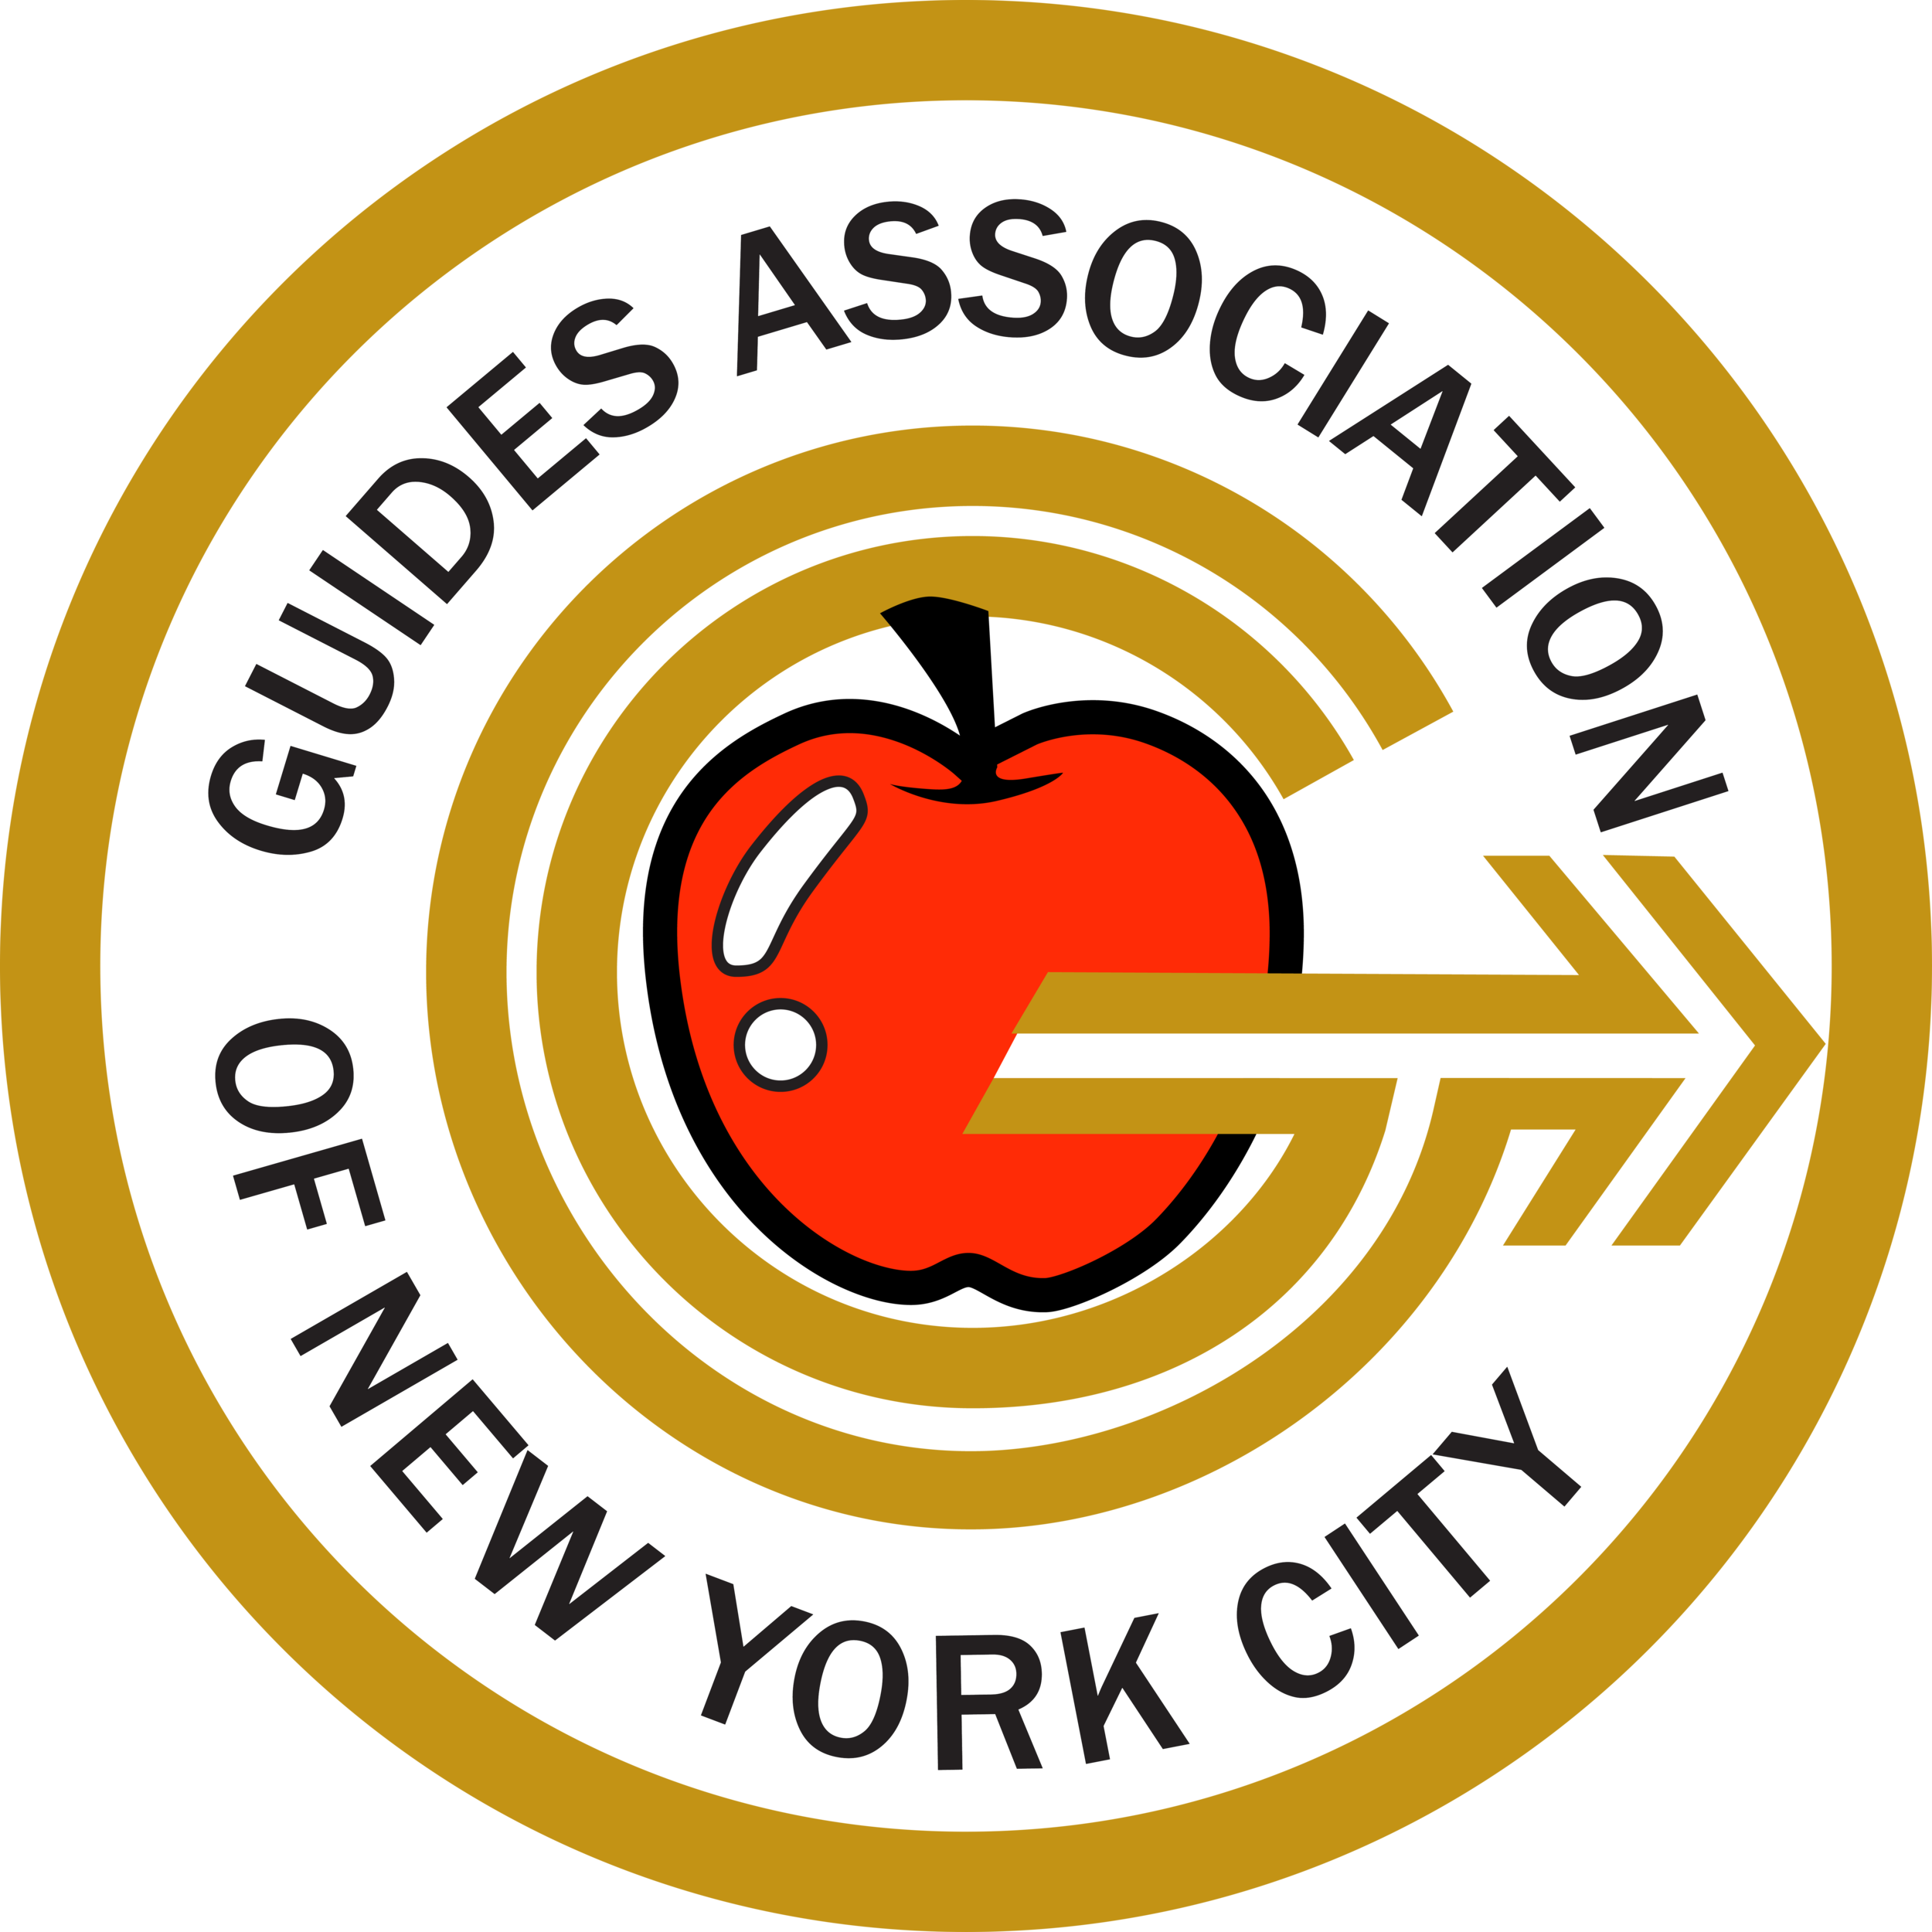 GANYC CLEAR BACKGROUND.png